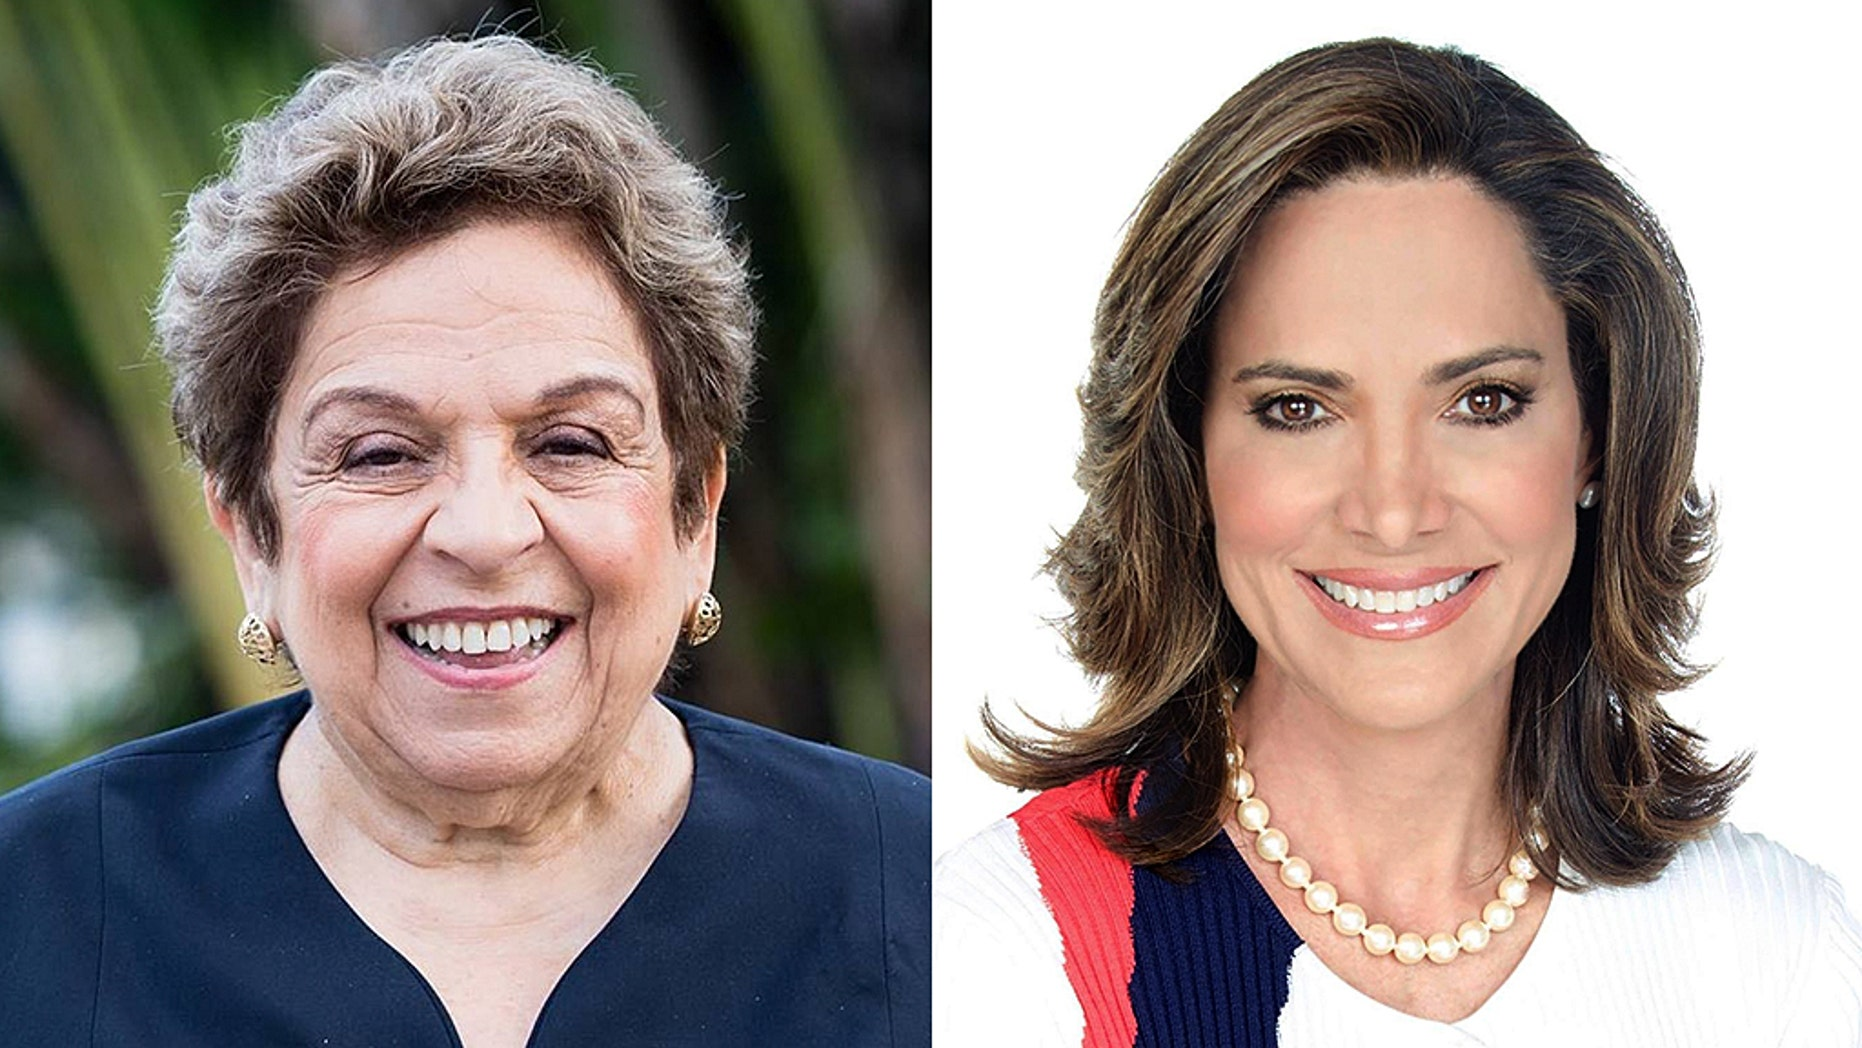 Donna Shalala (left) has bested Maria Elvira Salazar in Florida's 27th district